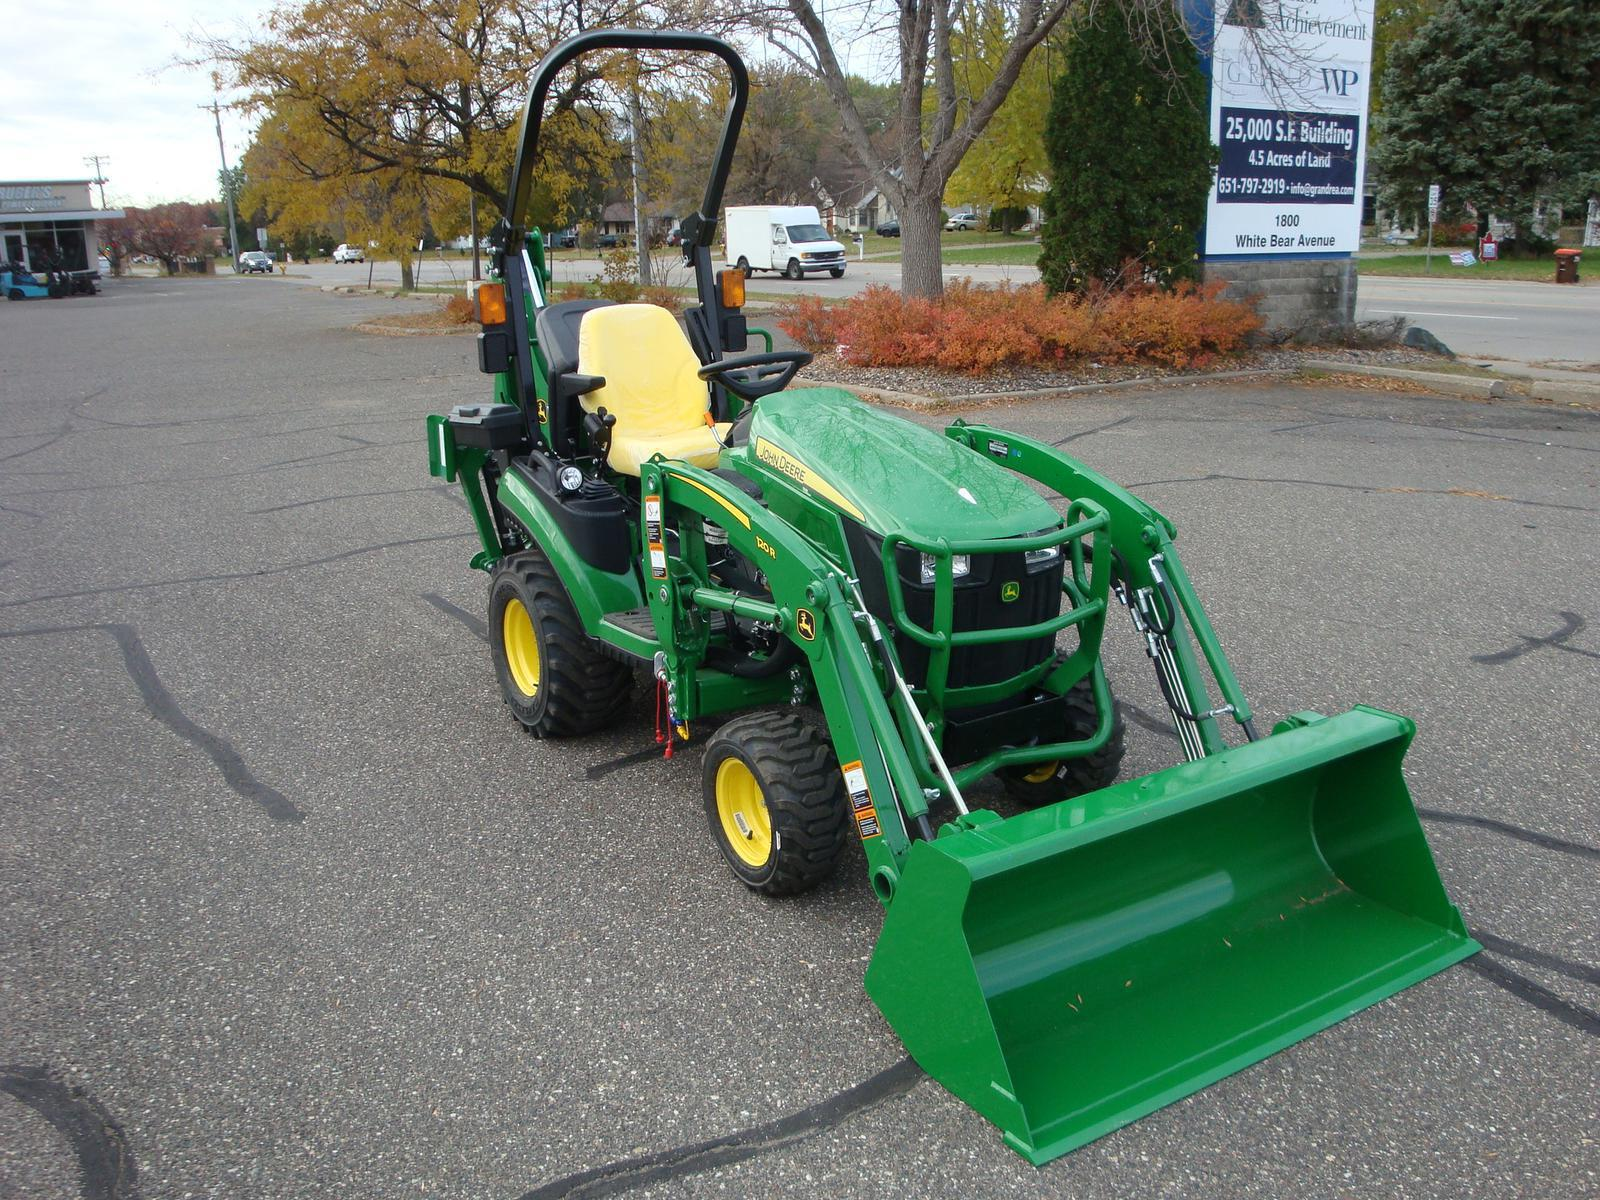 2019 John Deere 1025R for sale in Maplewood, MN  Gruber's